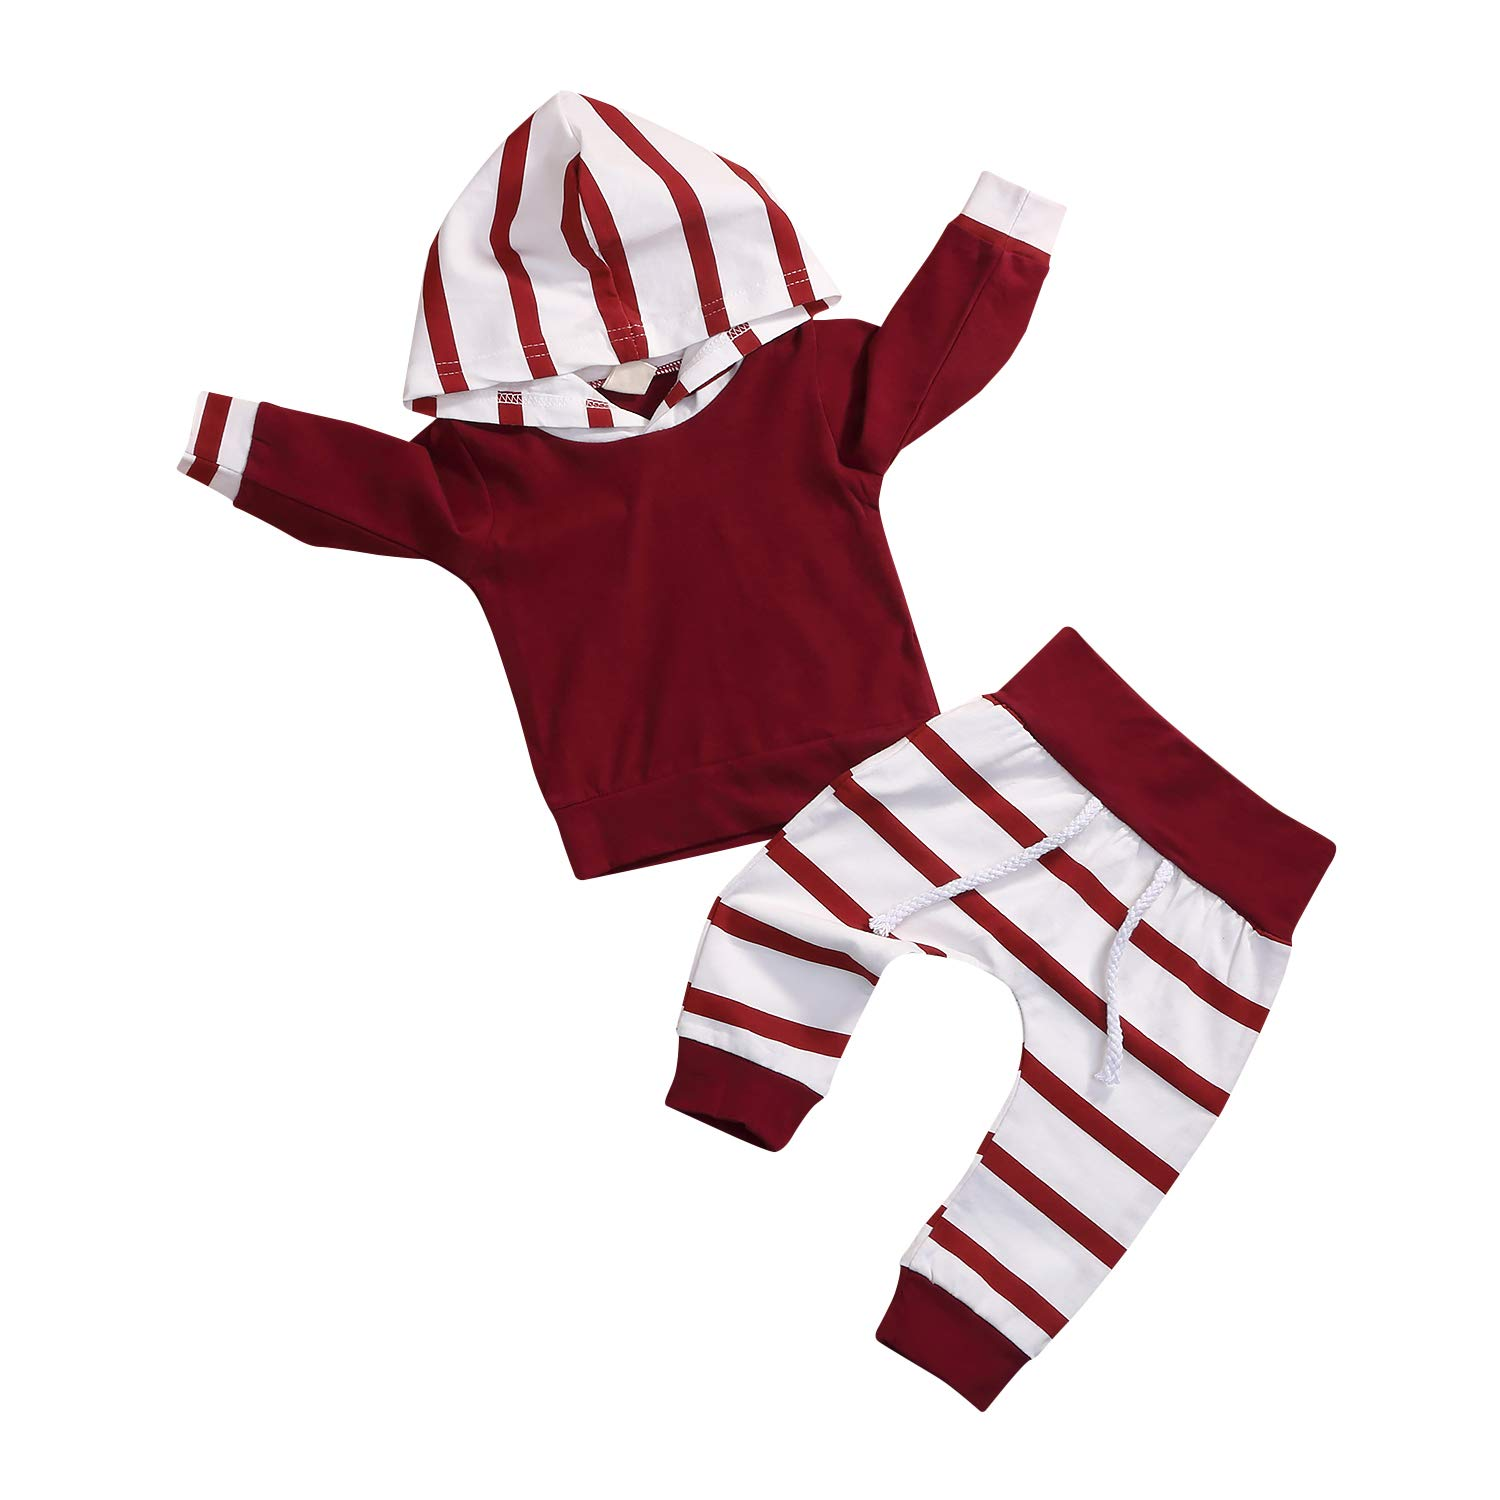 eb374690f ... and not irritative baby\'s skin. Both hand wash and machine wash is OK.  ♥❤ Design: Gender neutral. Long sleeve hooded top and striped Long trousers  ...